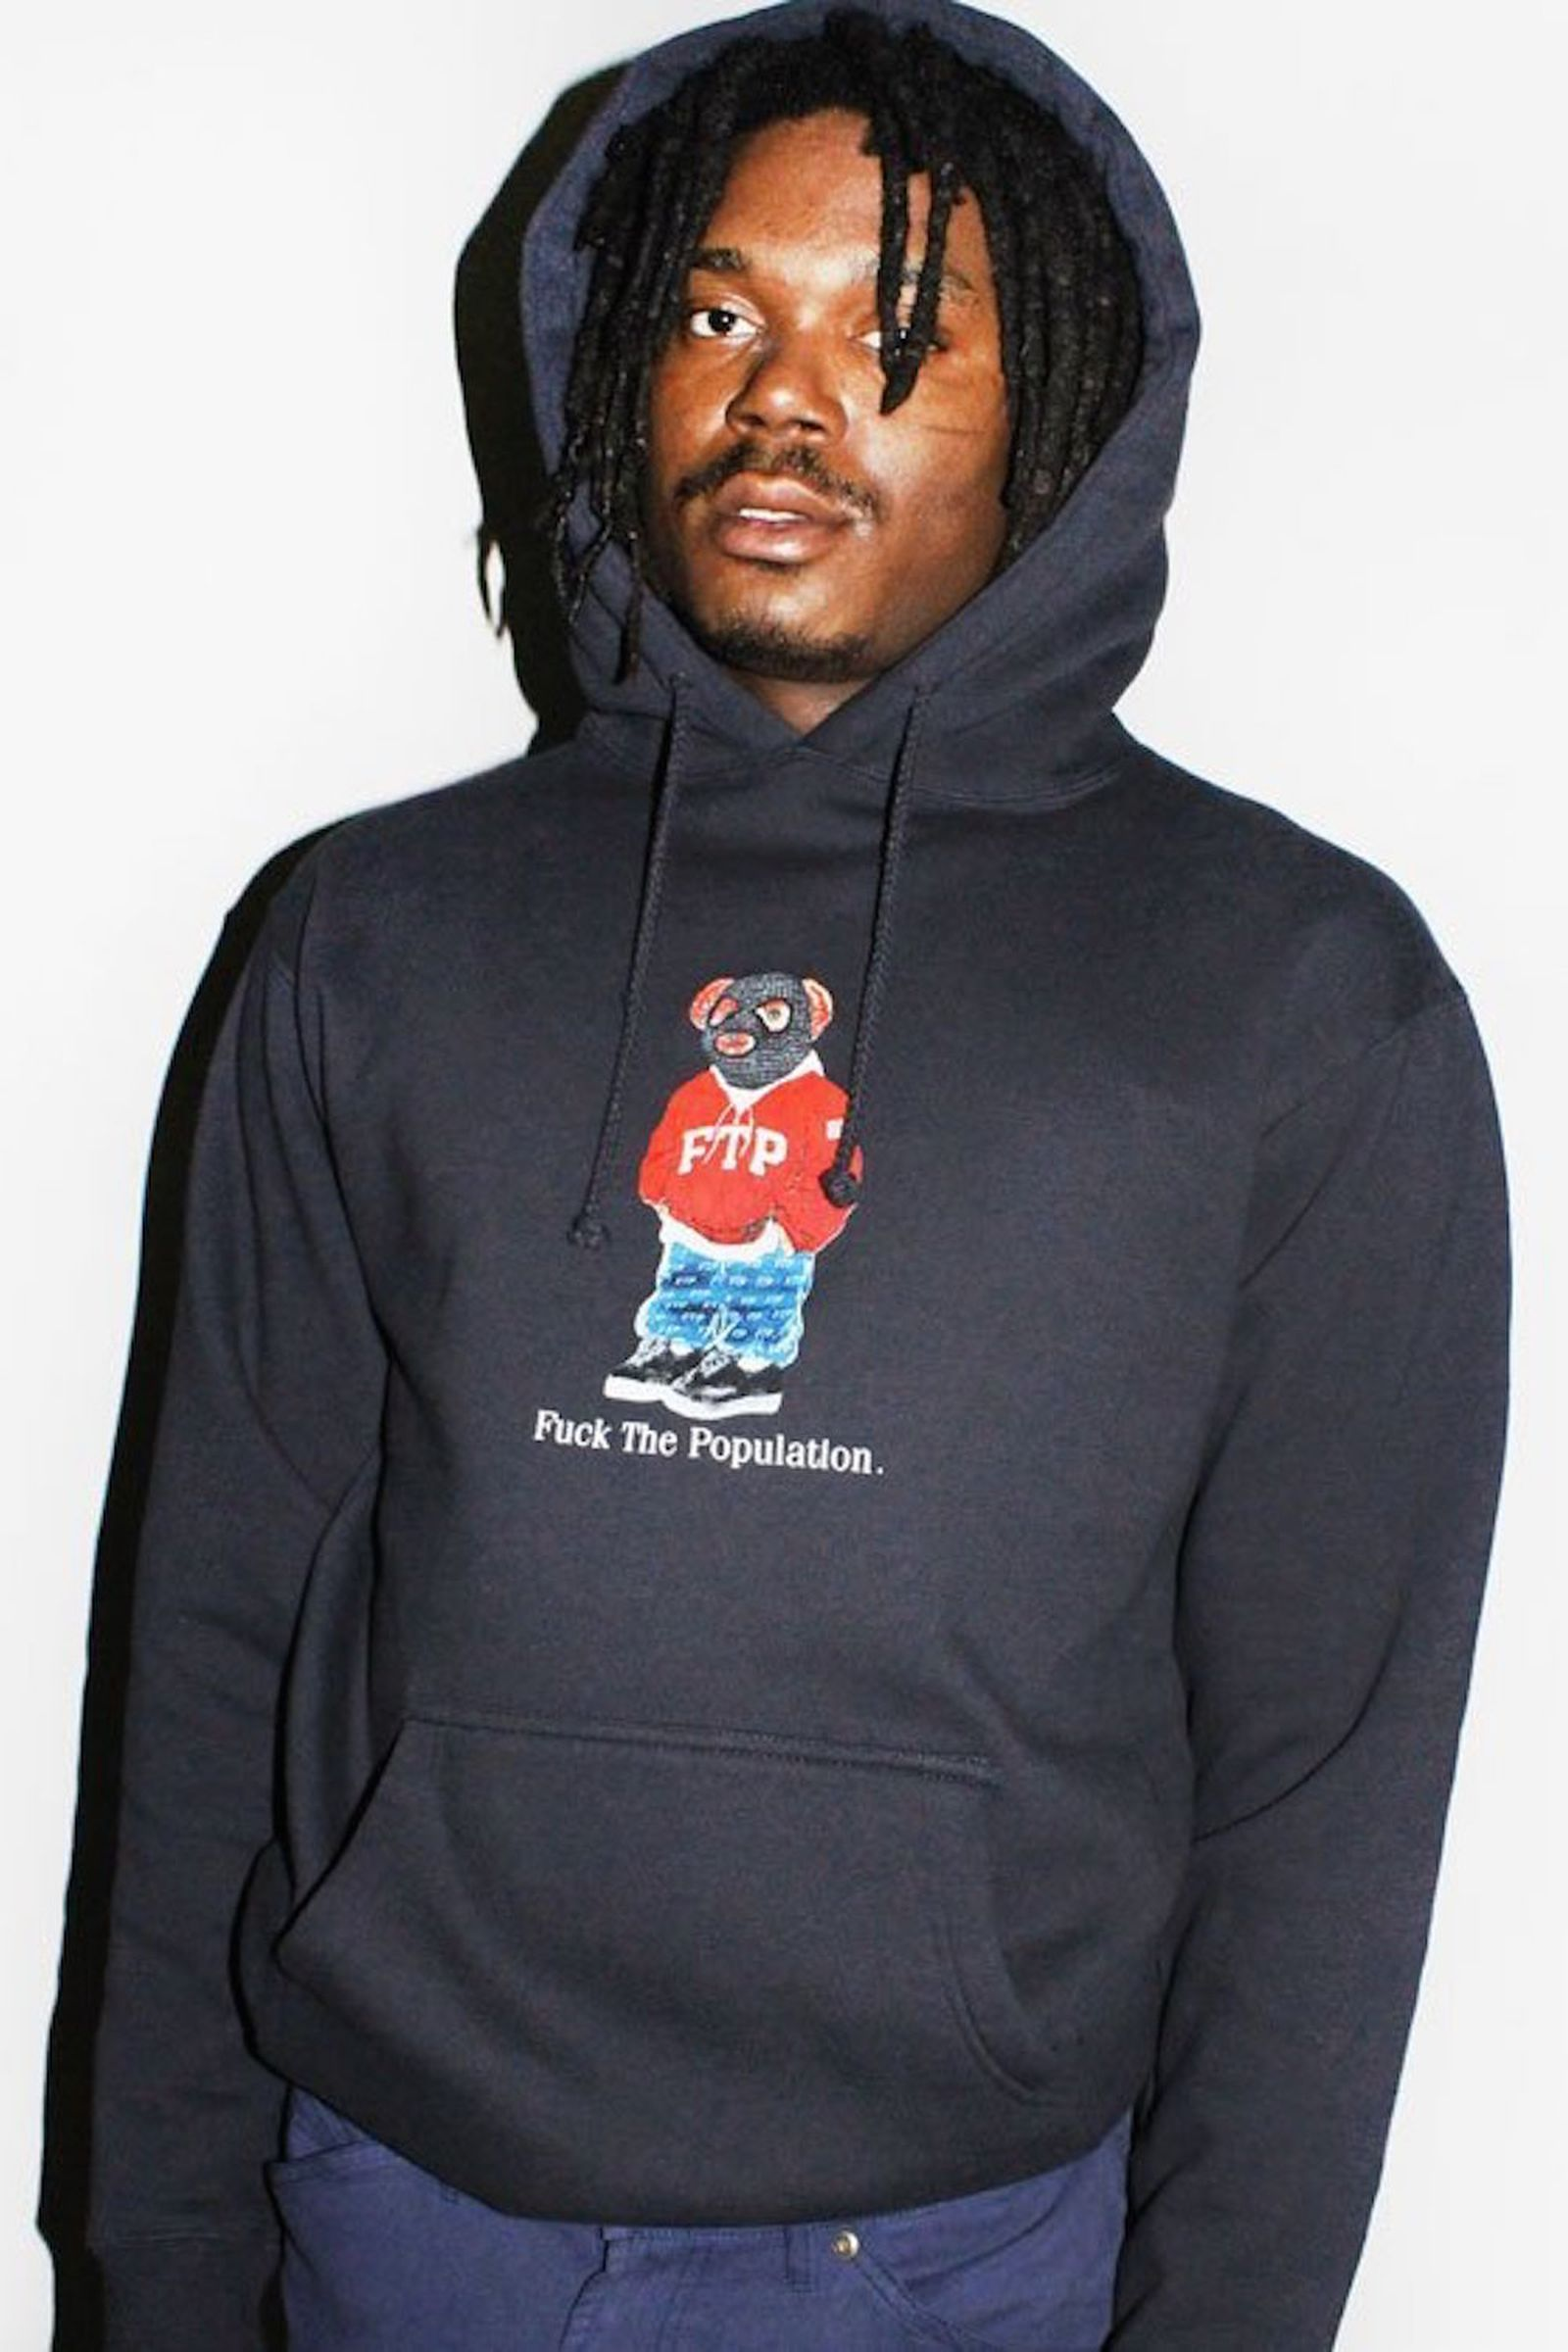 ftp ss19 Fuck the Population